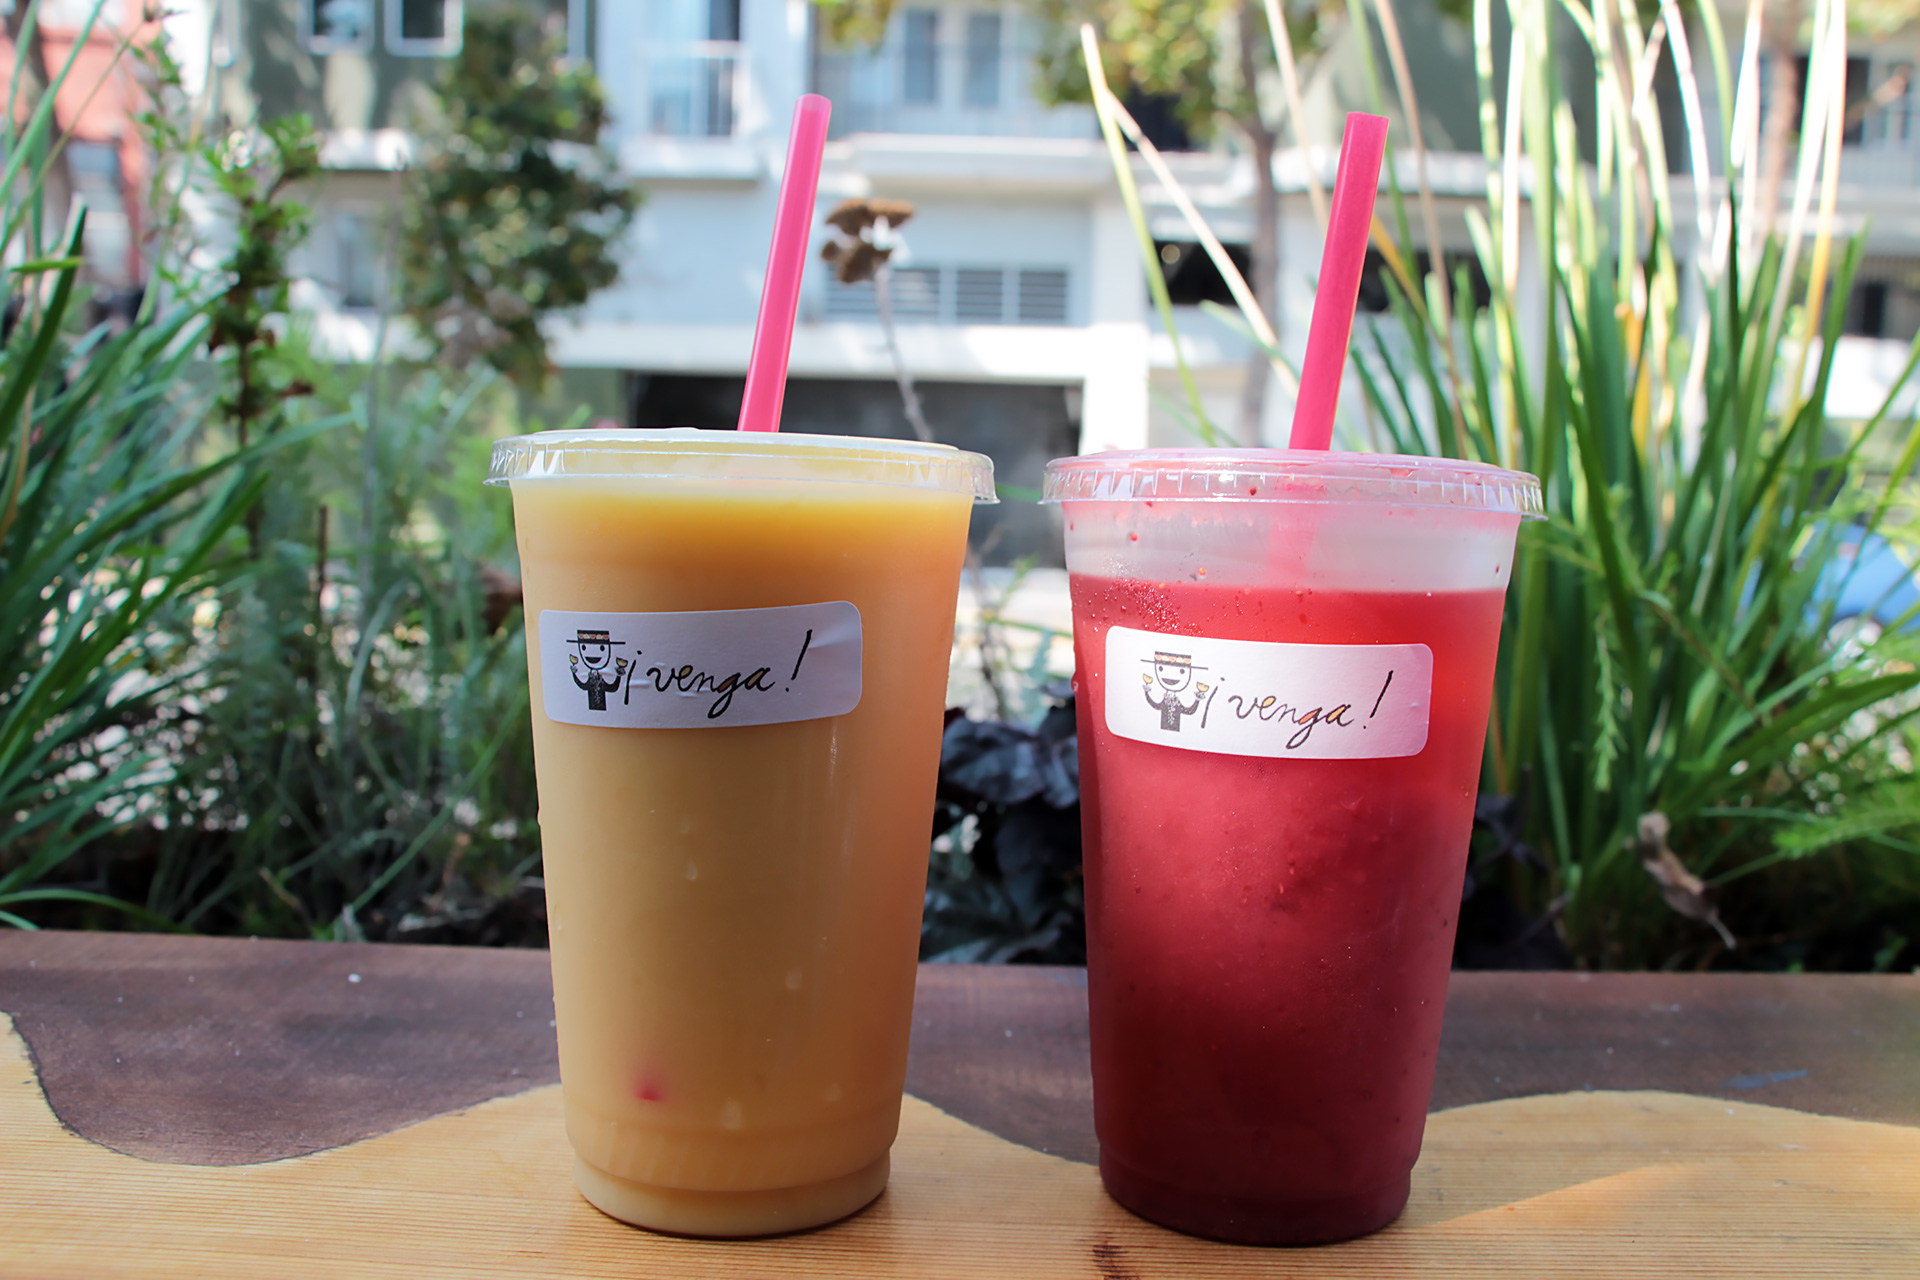 Homemade fruit drinks (mango and strawberry) are excellent accompaniments.